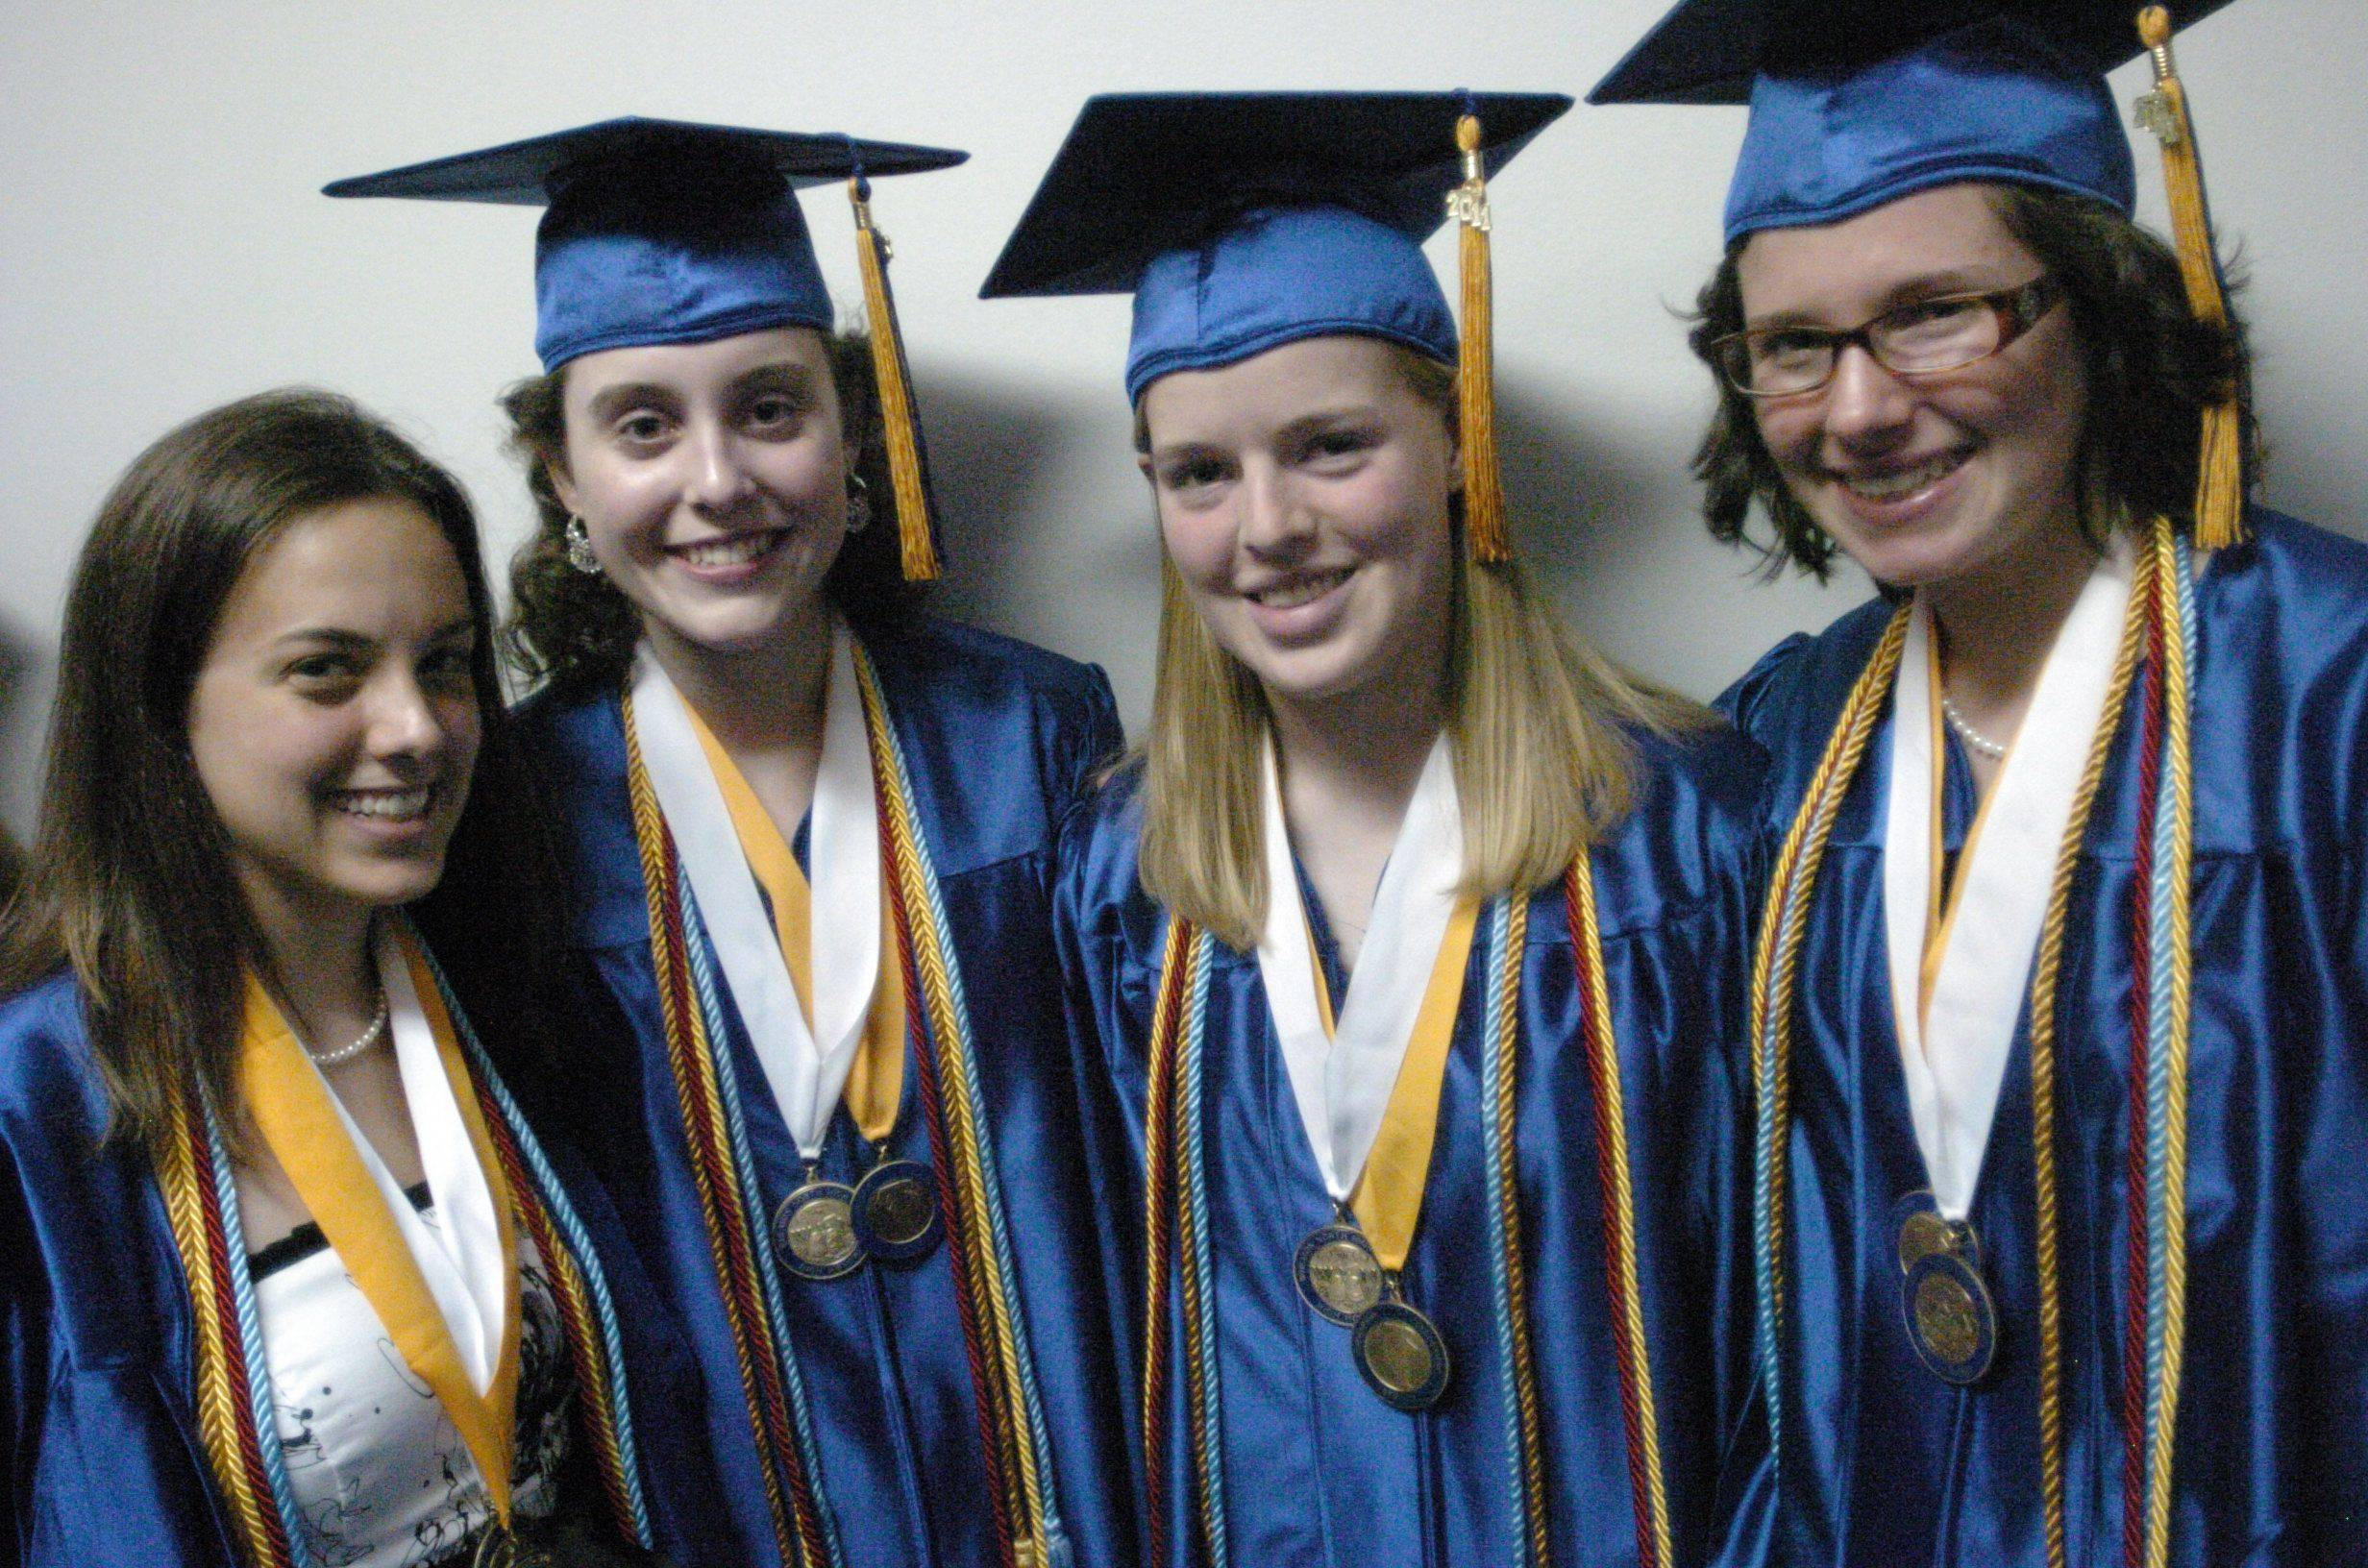 Images from the Wheaton North High School graduation on Saturday, June 4th at The College of DuPage in Glen Ellyn.